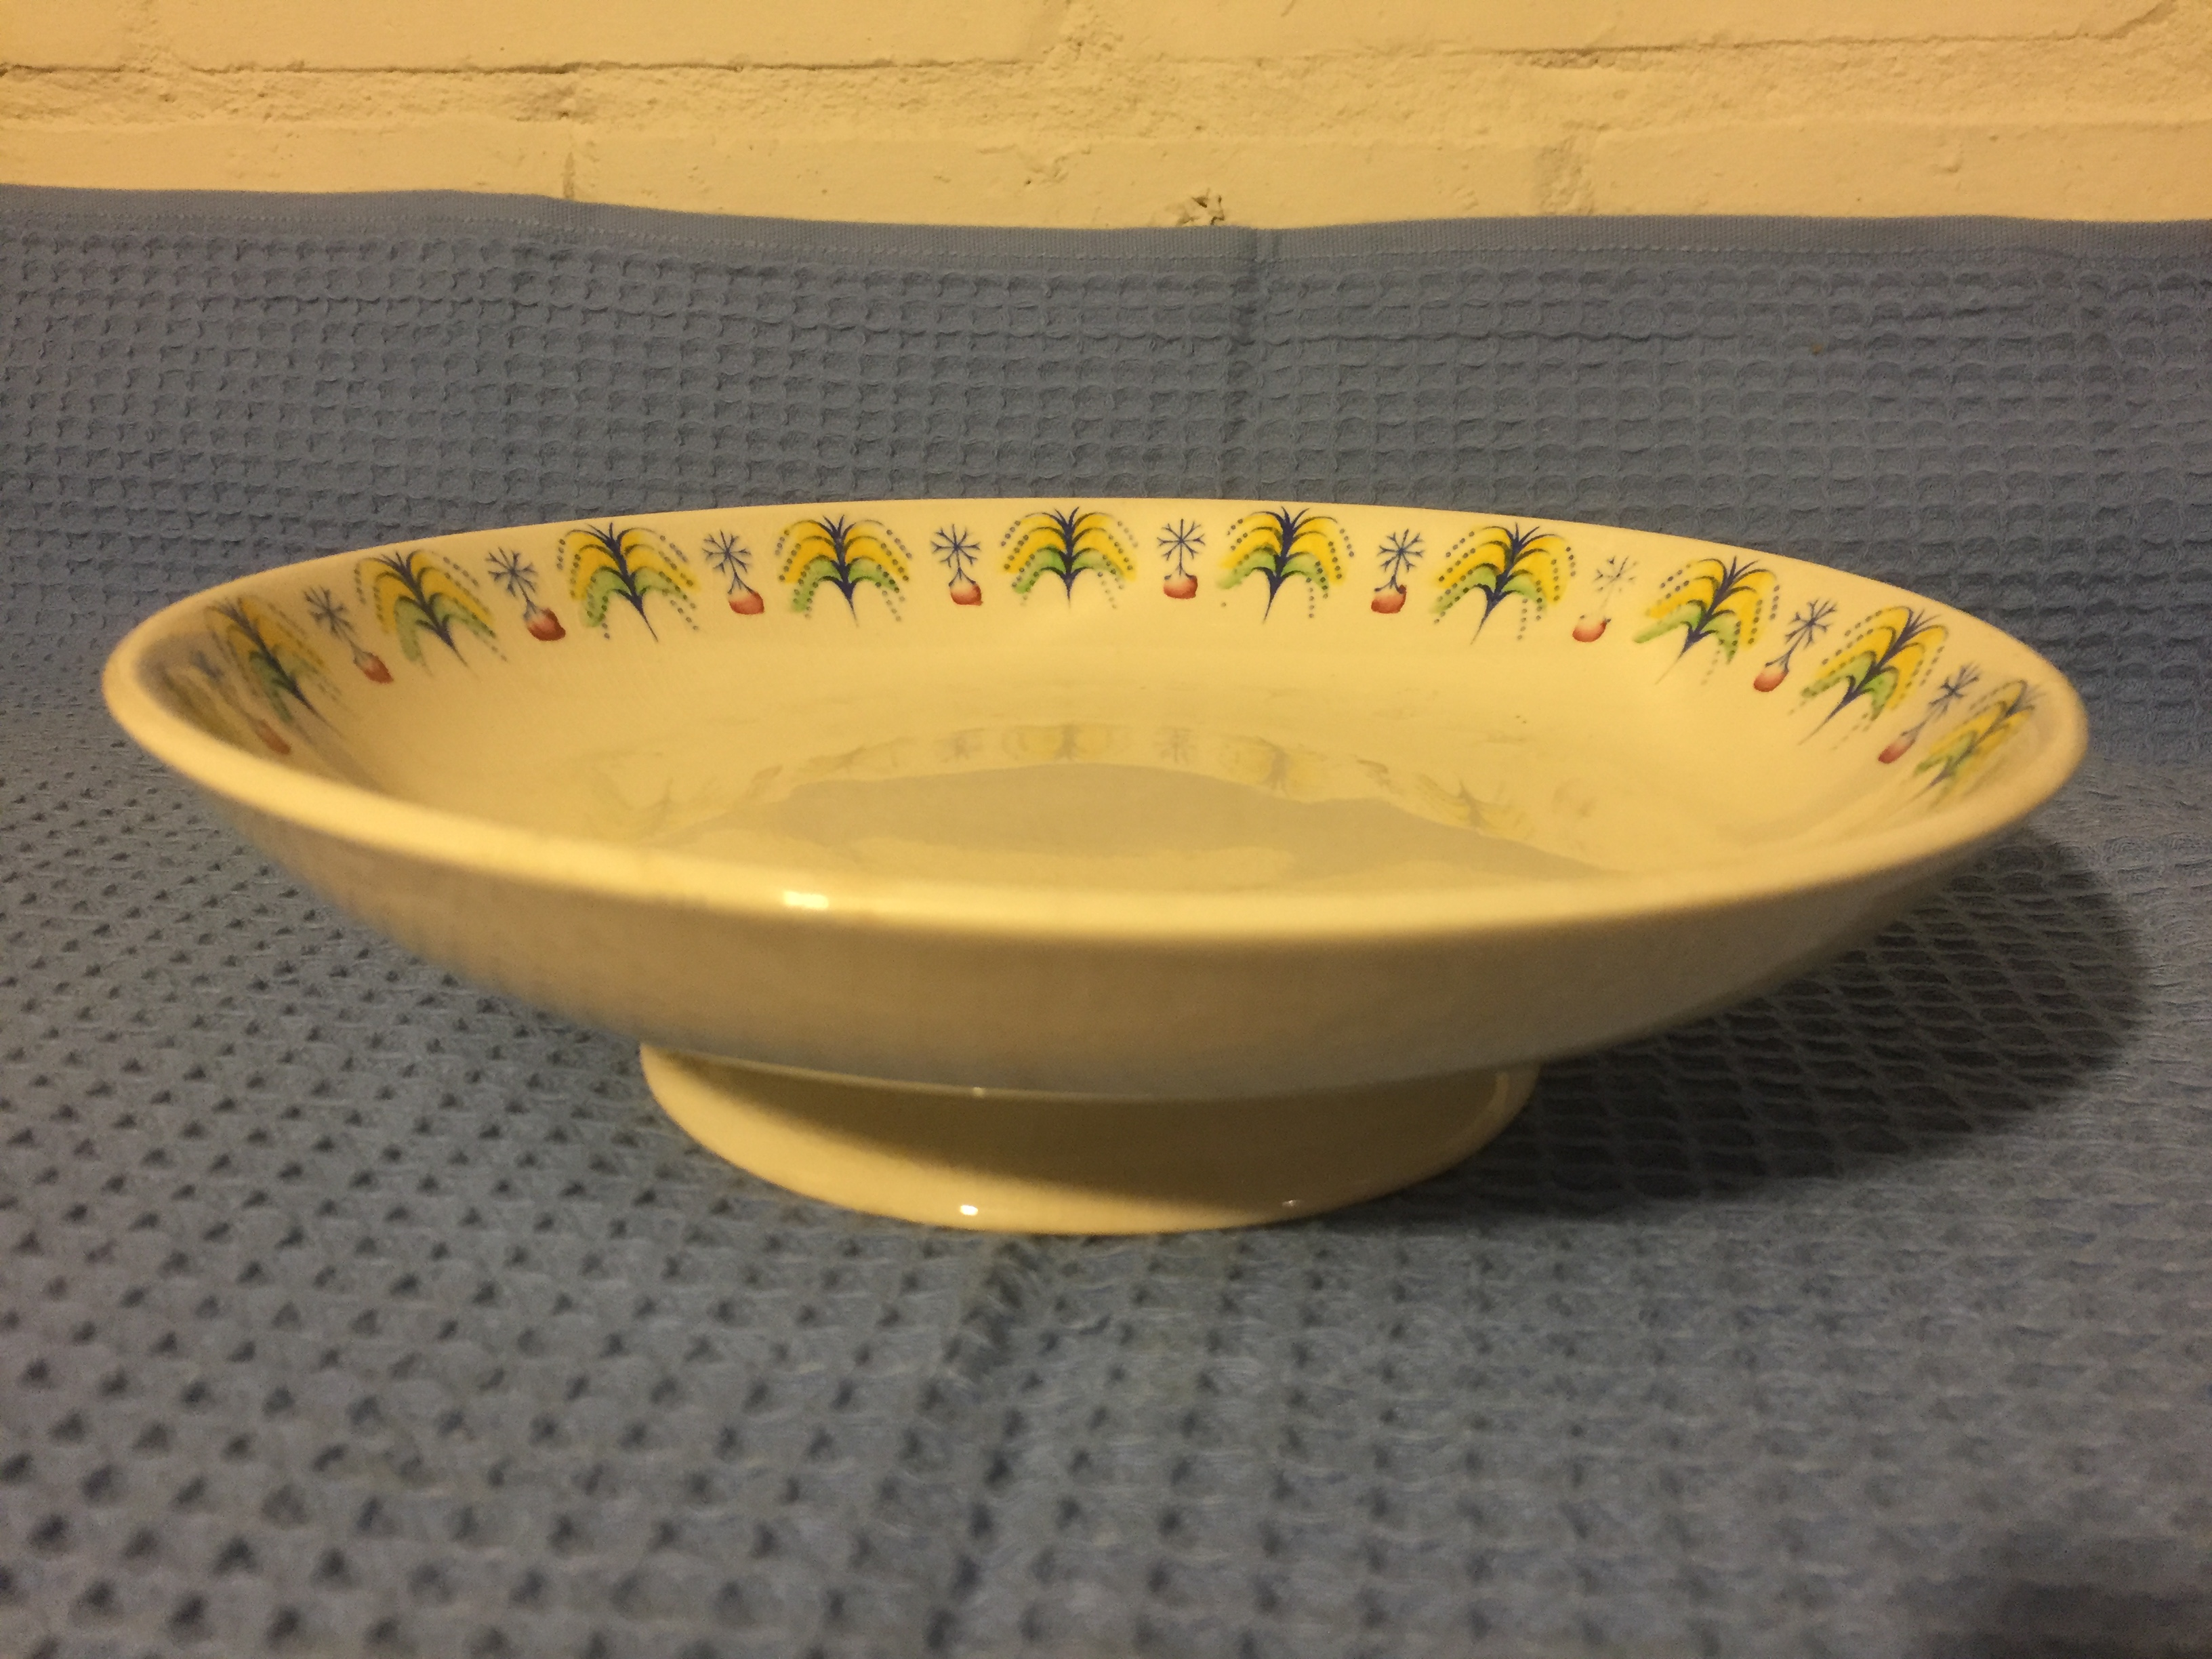 VERY EARLY 1920'S DESIGN CAKE STAND FROM THE UNION CASTLE LINE